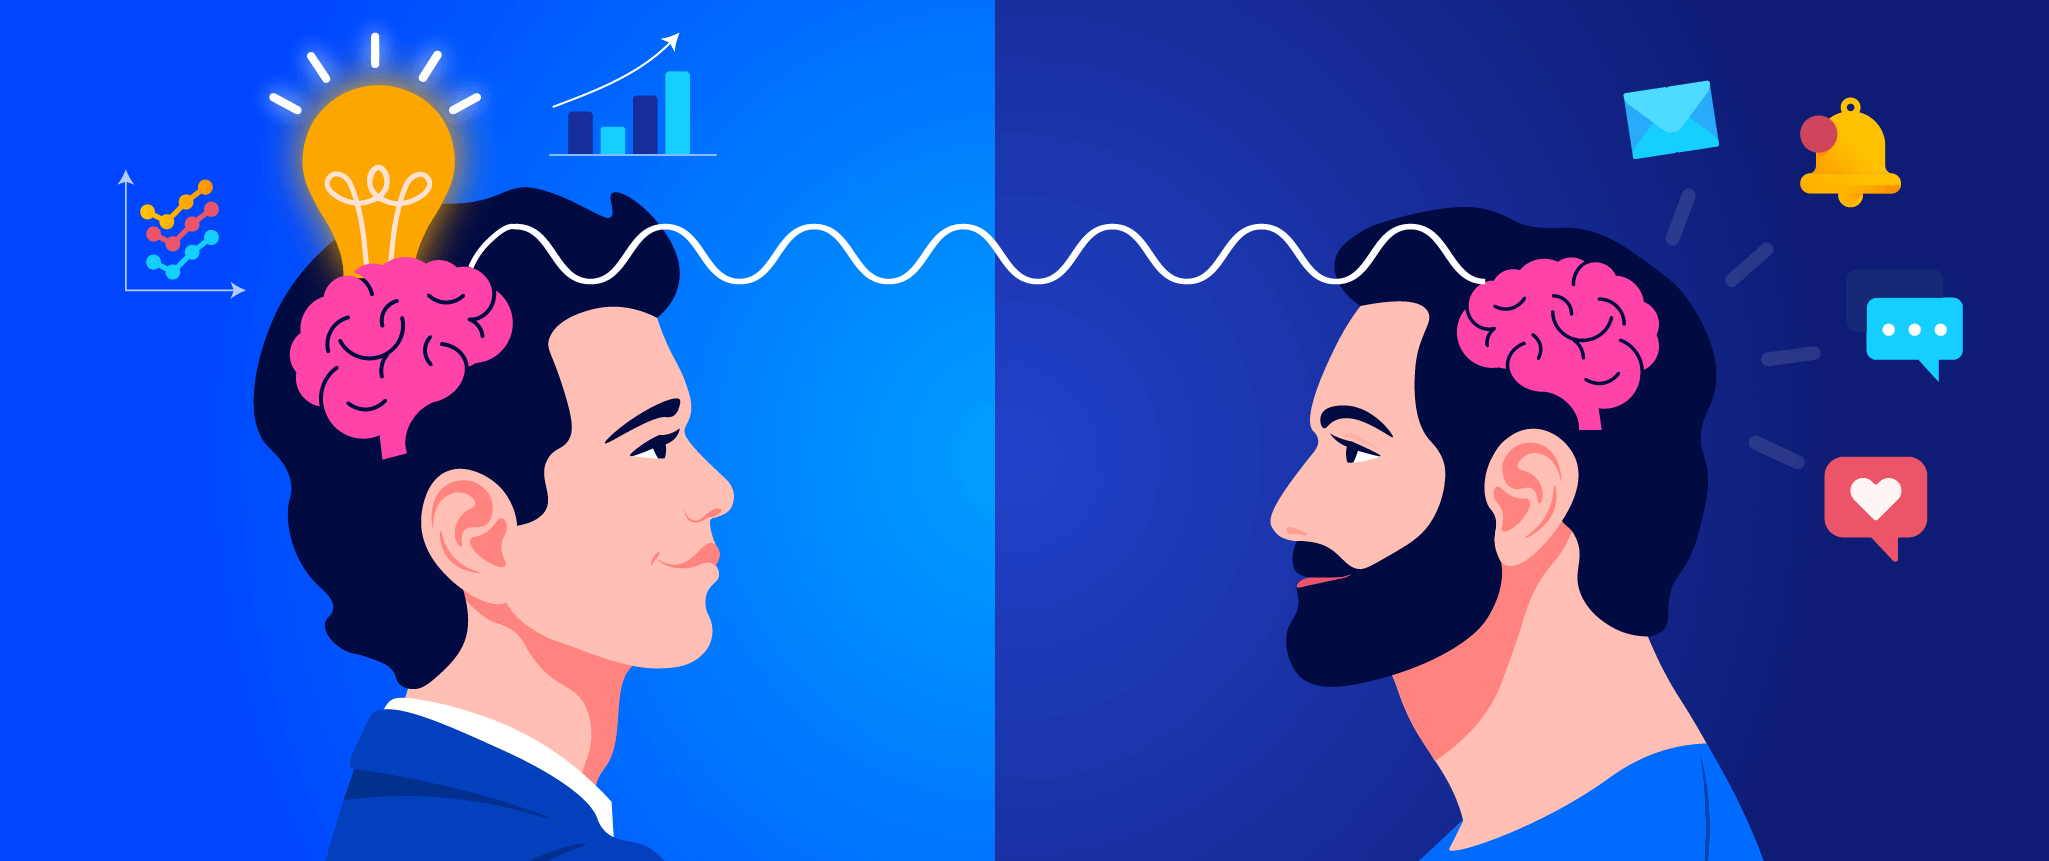 Empathy is Key for connecting to users - image of 2 people on similar brainwaves